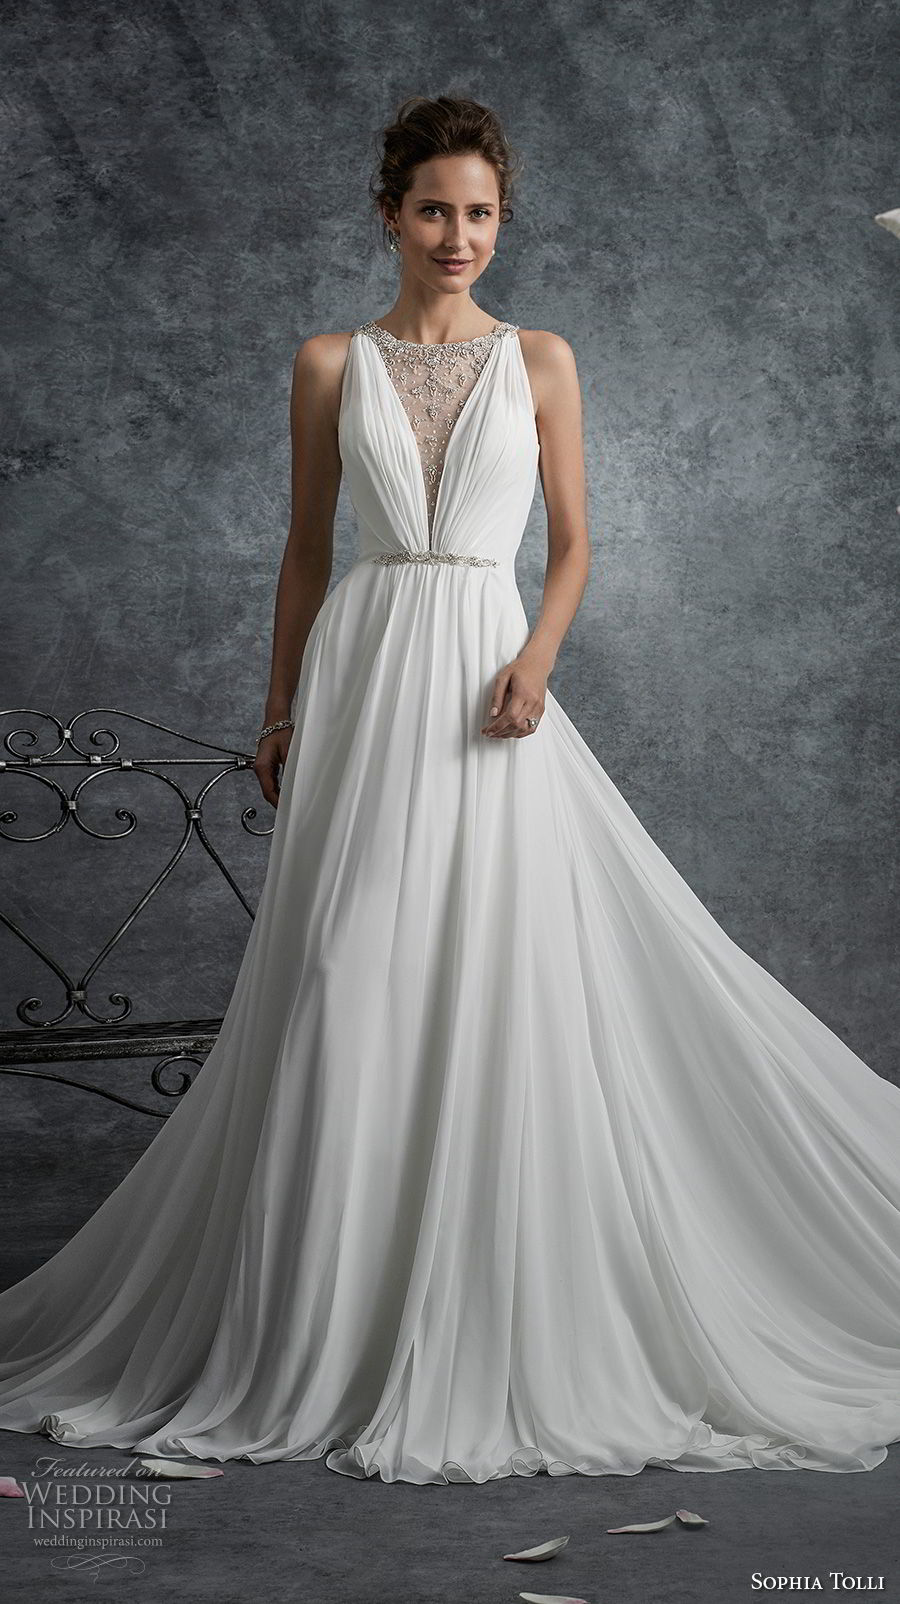 sophia tolli fall 2017 bridal sleeveless illusion jewel deep v neckline simple grecian romantic a line wedding dress sheer back chapel train (17) mv